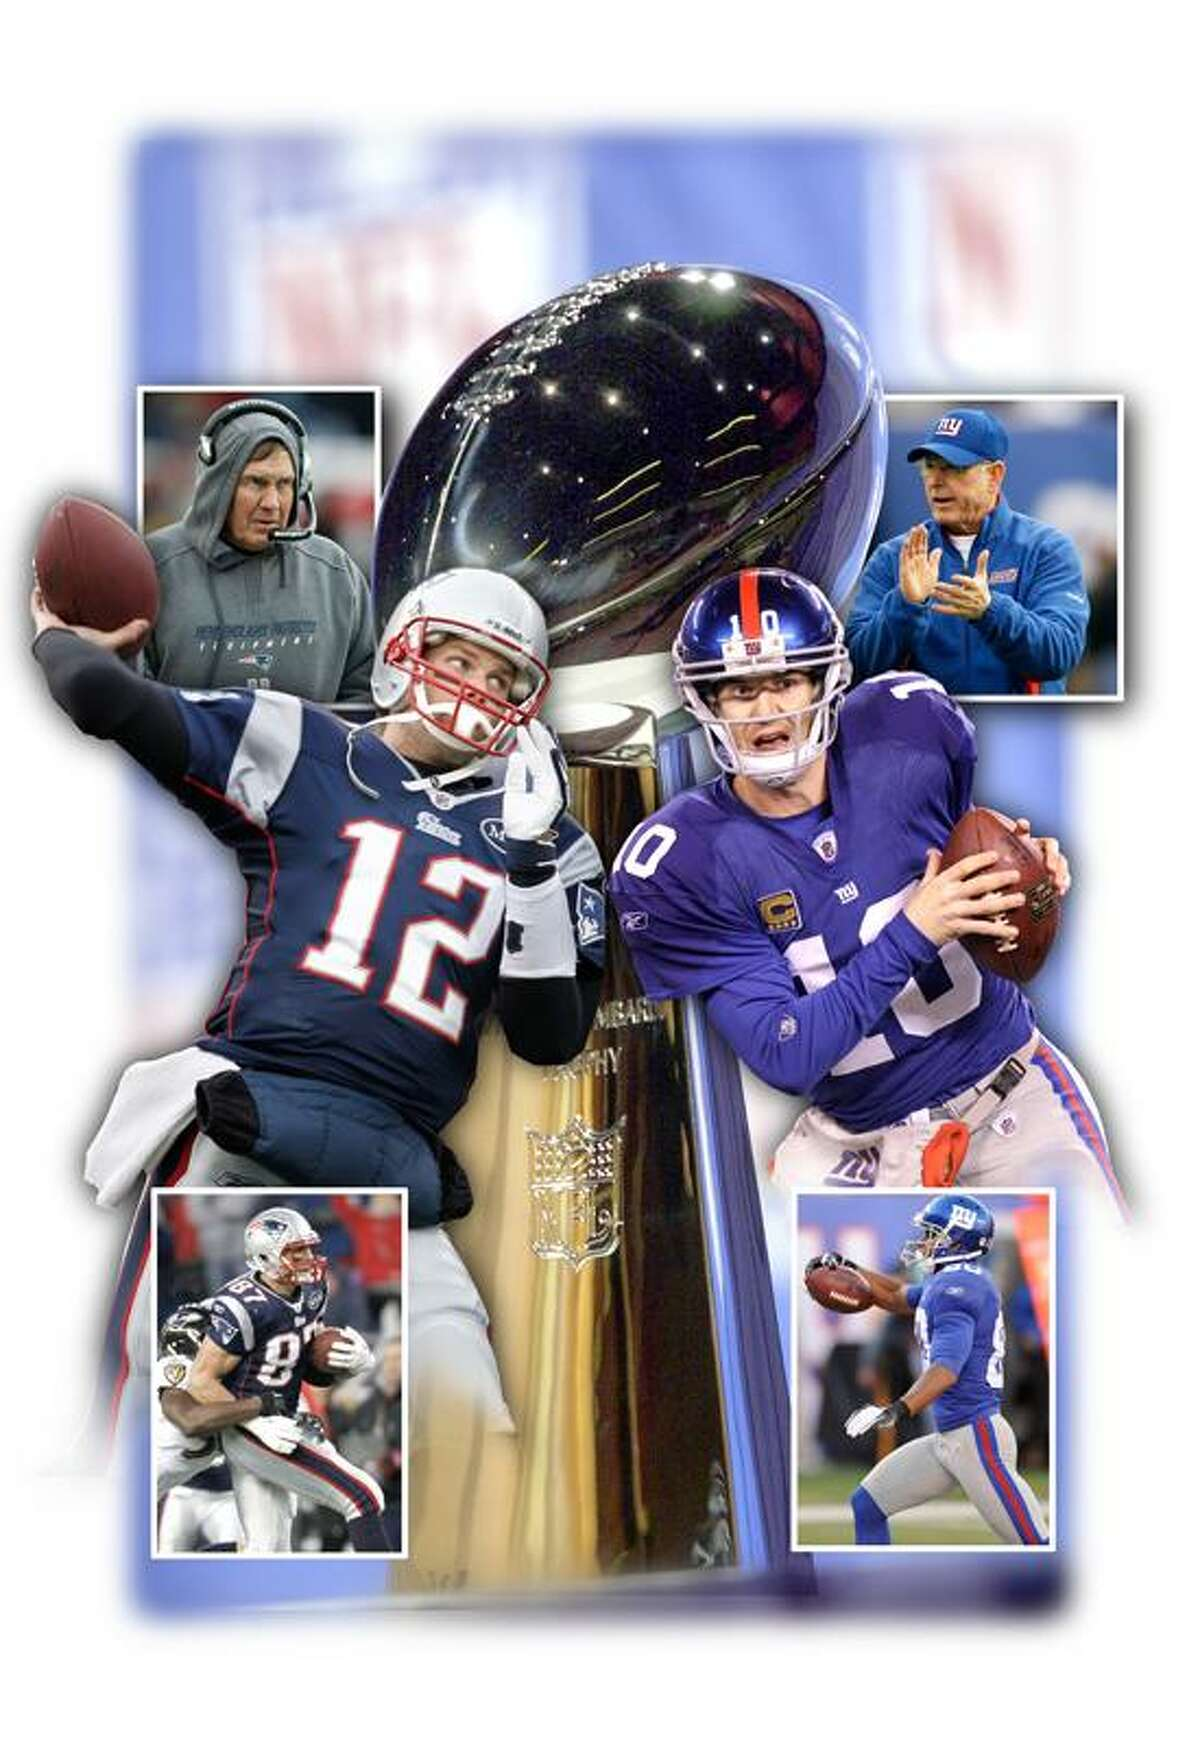 ** FOR USE AS DESIRED WITH SUPER BOWL XLII STORIES ** FILE ** The Vince Lombardi Trophy is displayed in this Feb. 1, 2002 file photo,in New Orleans. The New York Giants take on the New England Patriots in Super Bowl XLII on Sunday, Feb. 3, 2008 in Glendale, Ariz. (AP Photo/Tony Gutierrez, file)